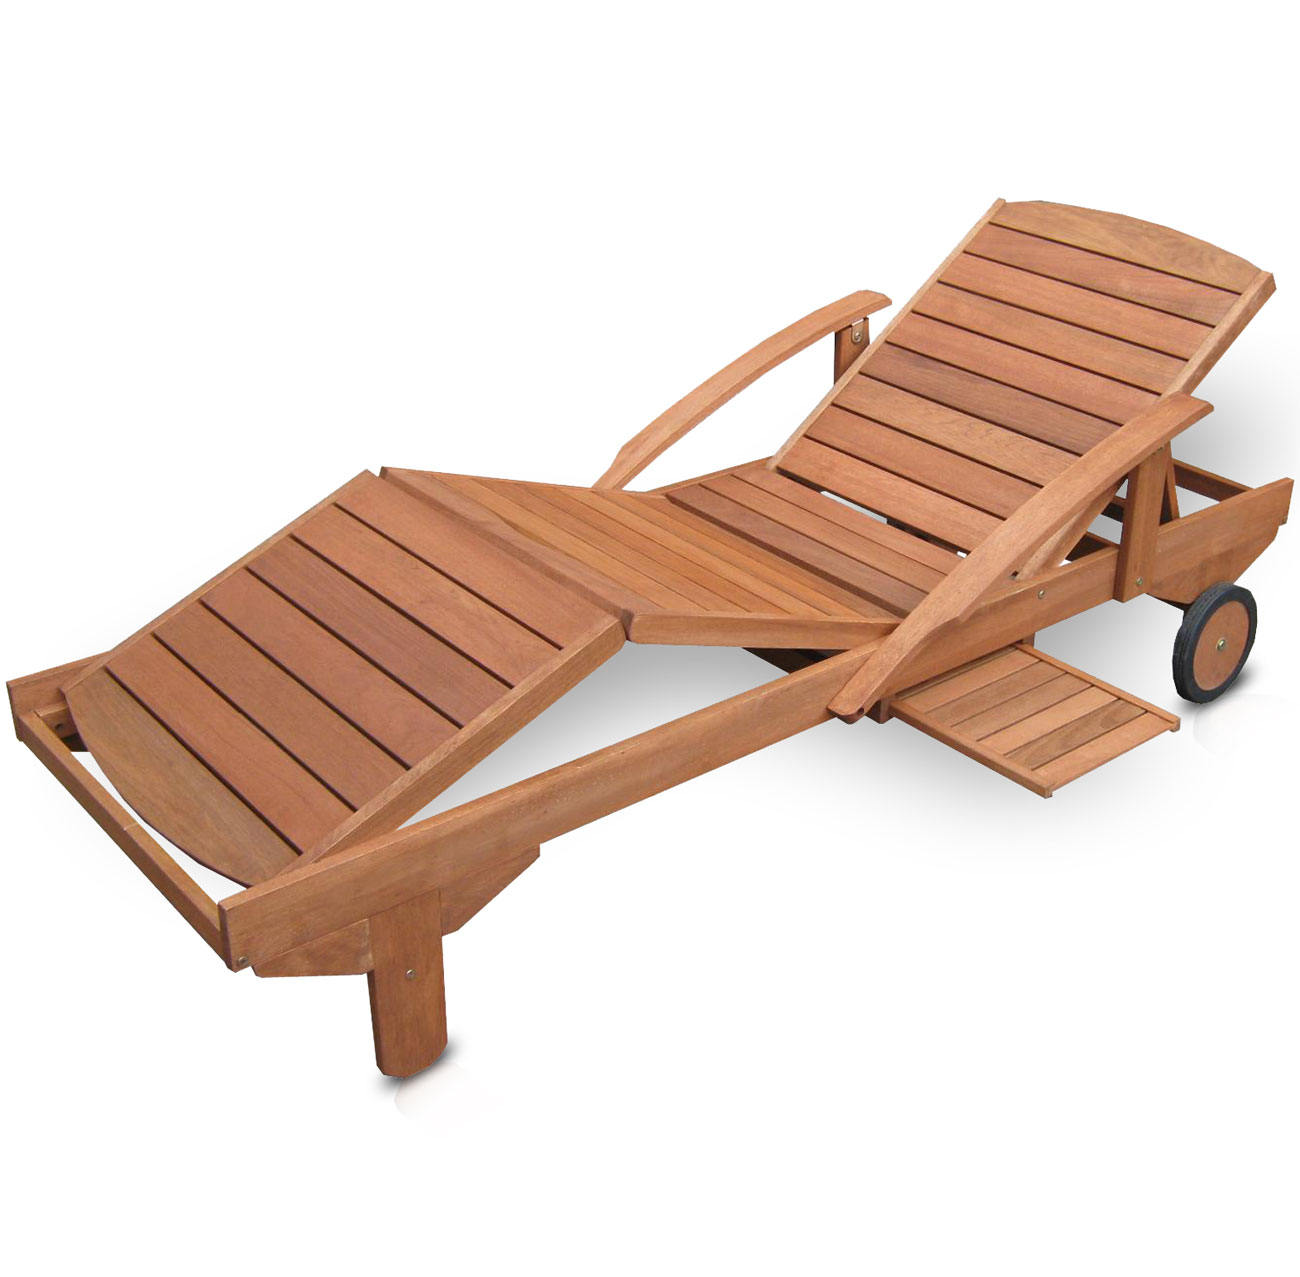 hecht era sonnenliege lounger gartenliege holzliege liege holz meranti ebay. Black Bedroom Furniture Sets. Home Design Ideas